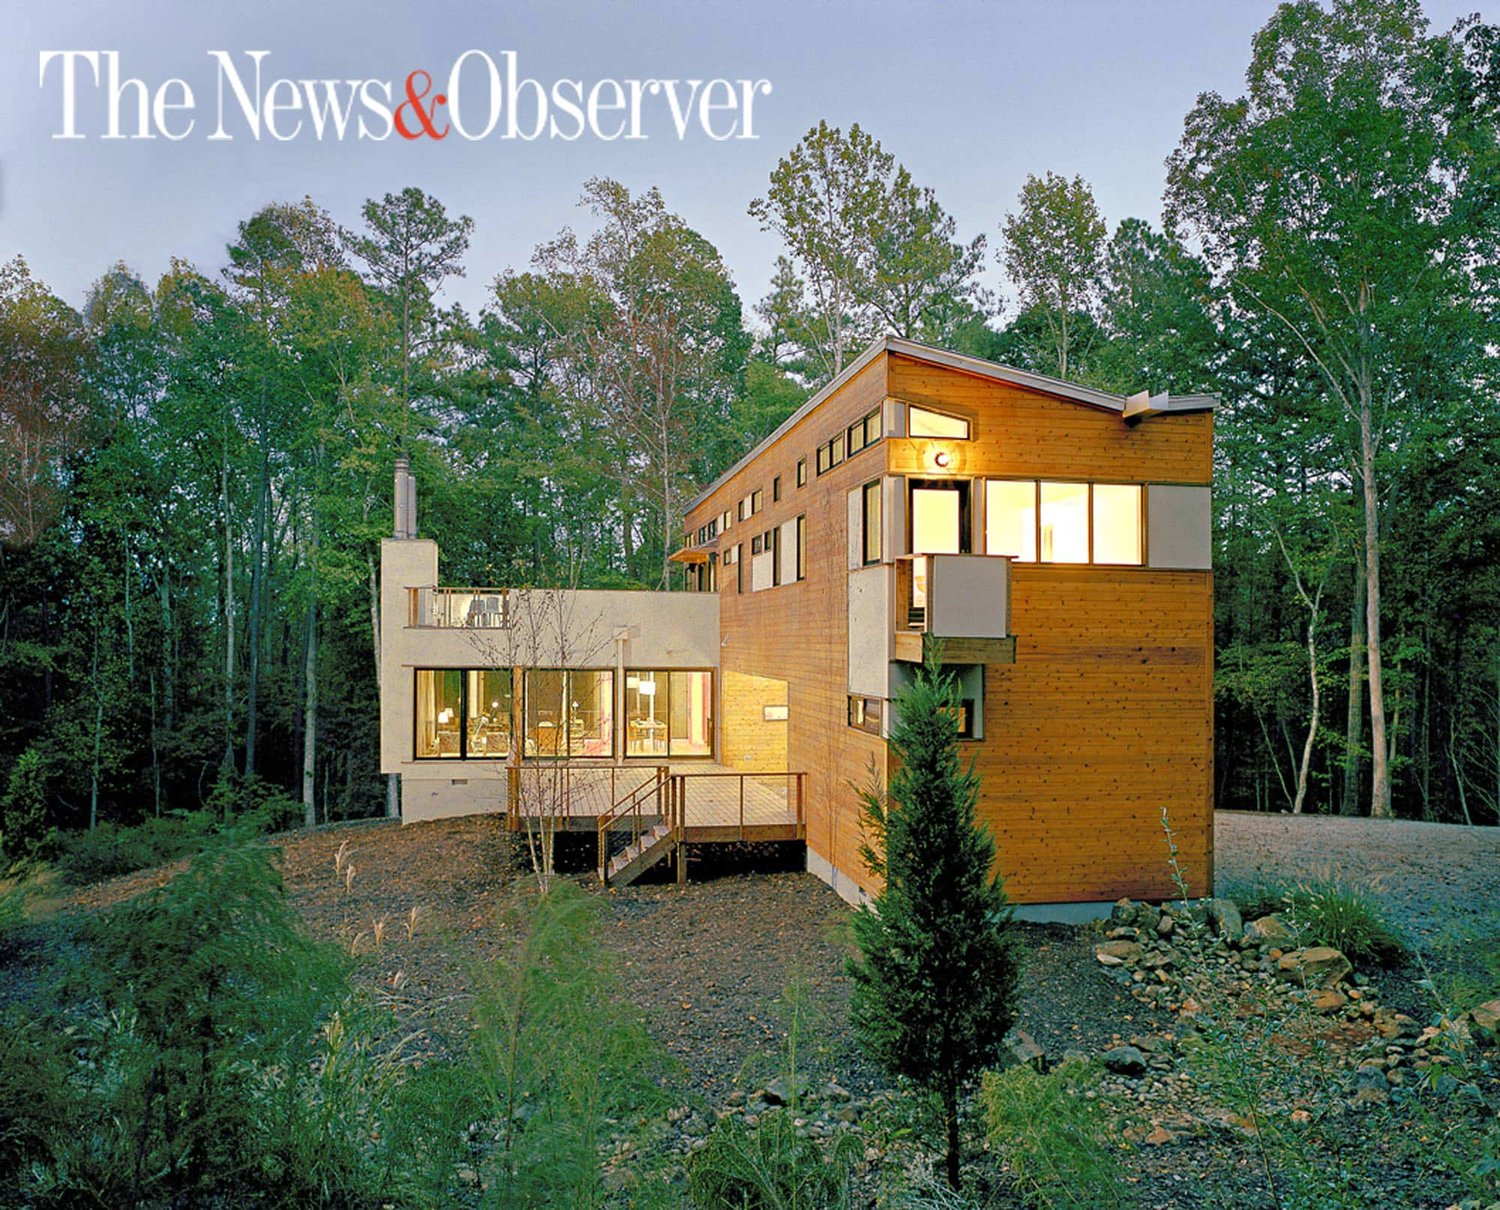 Modern Architecture News res4 | resolution: 4 architecture | news